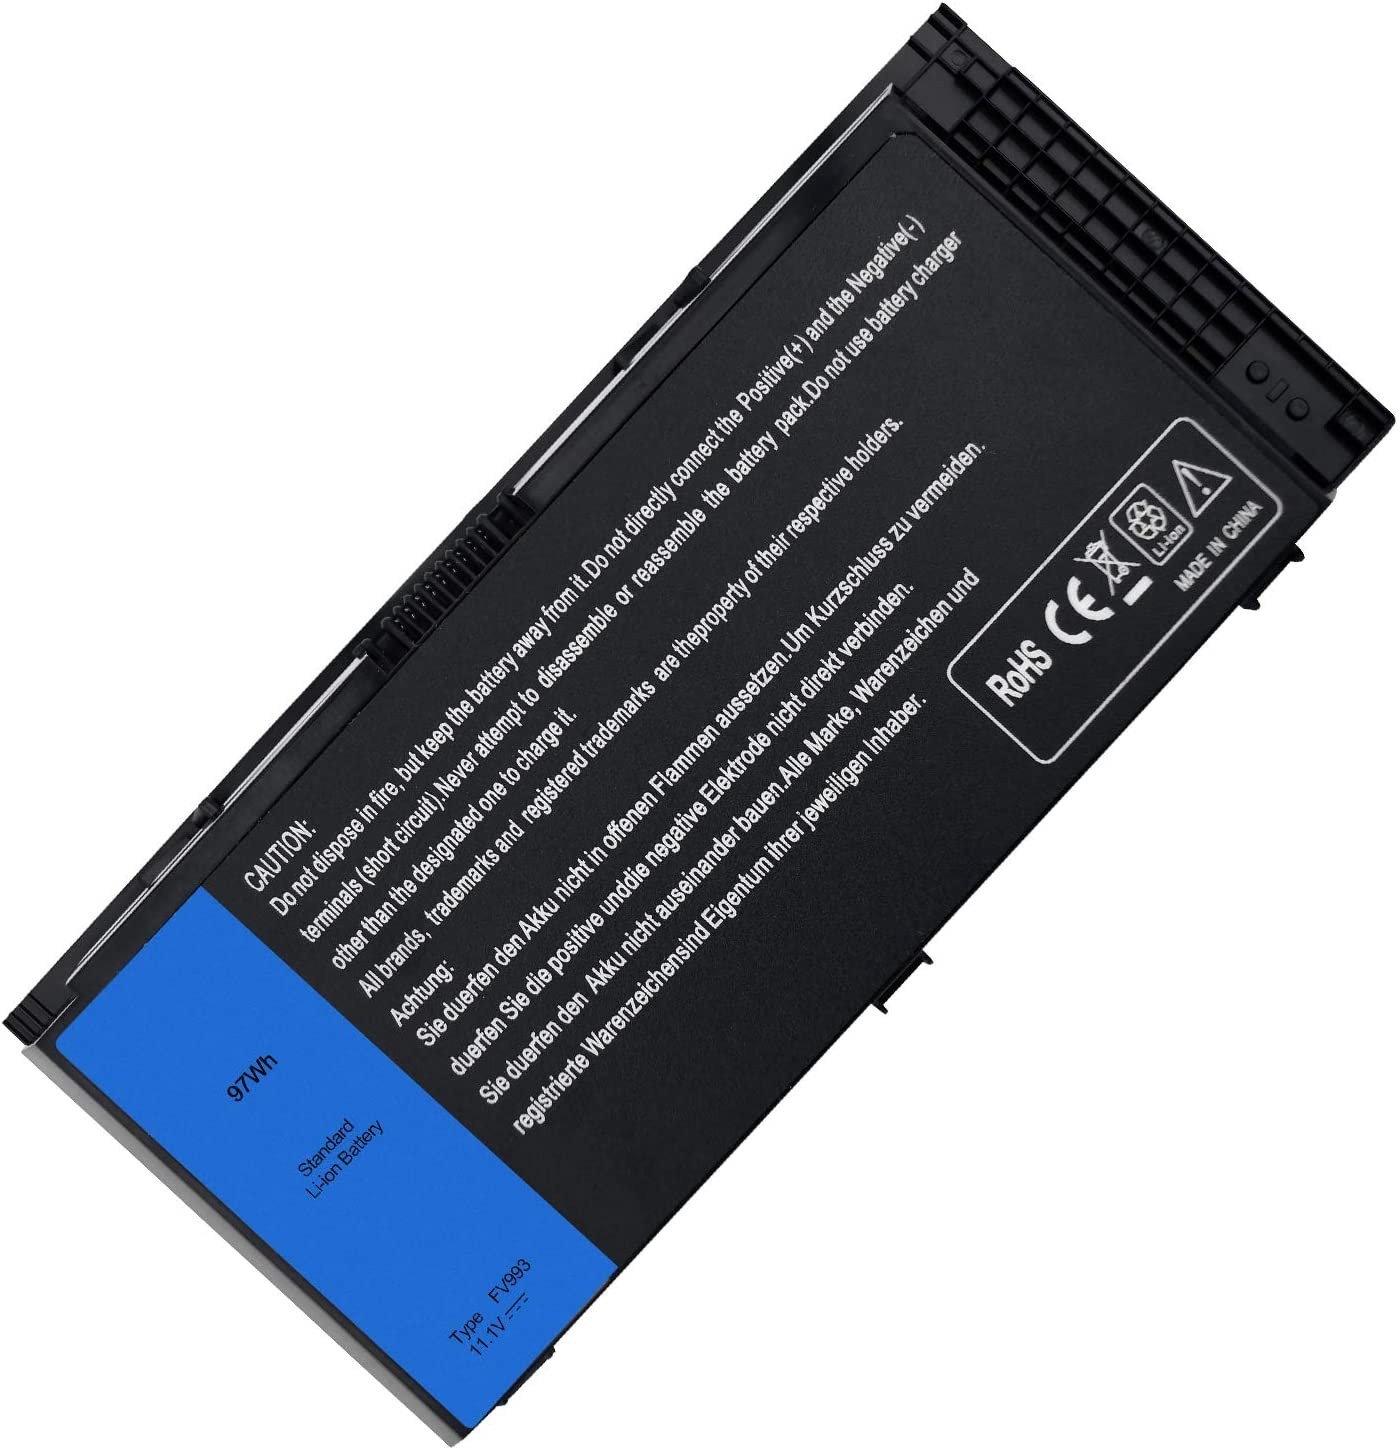 New M6600 Laptop Battery for Dell Precison M4600 M4700 M4800 M6700 M6600 M6800 Series,Fits FV993 FJJ4W KJ321 PG6RC V7M28 R7PND 7DWMT JHYP2 K4RDX